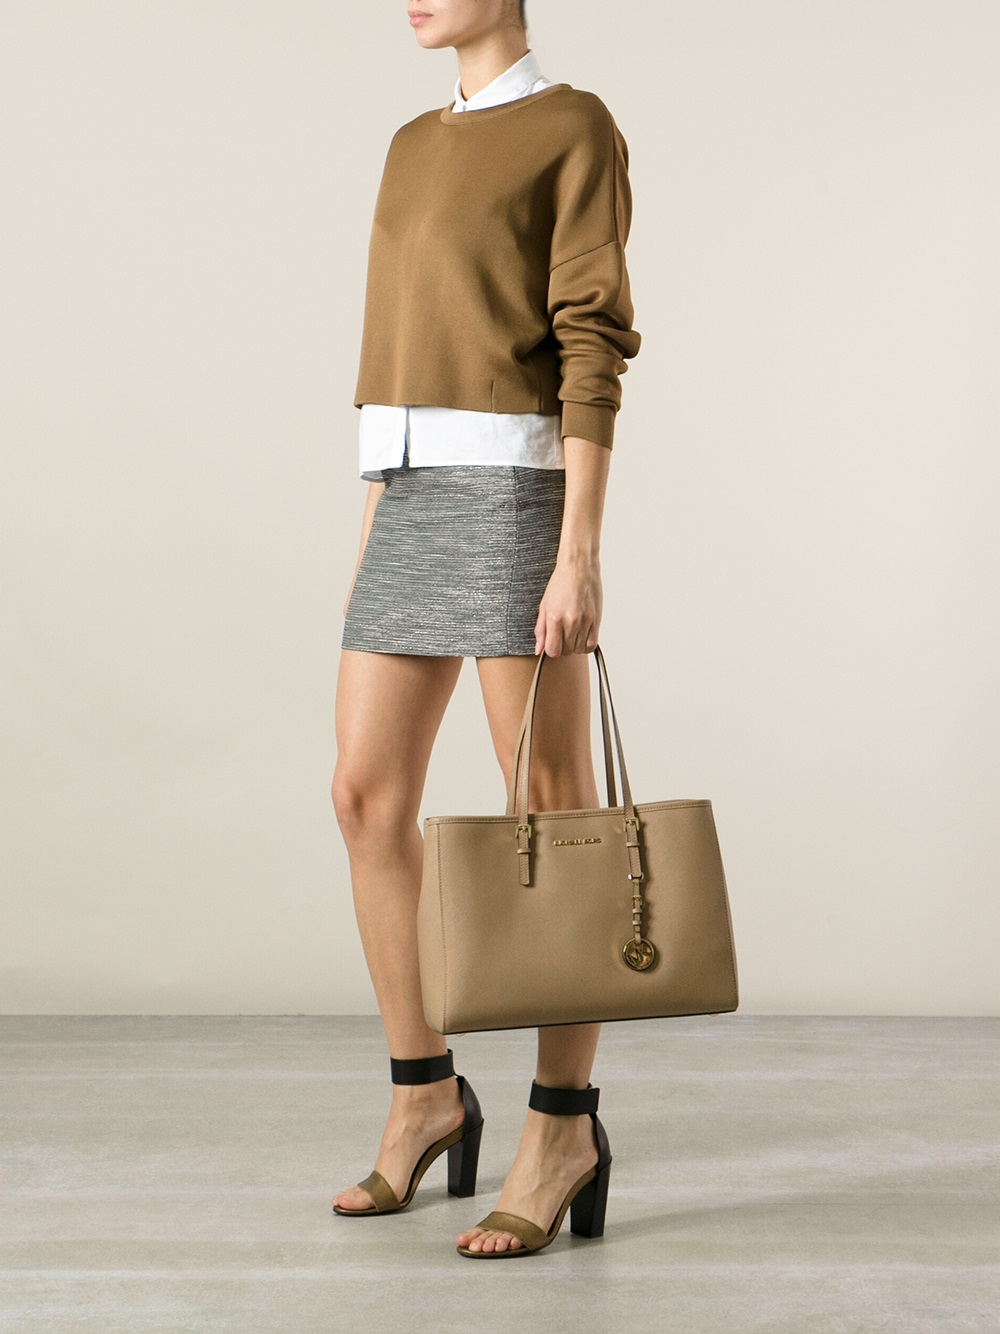 090e4a4f2a Lyst - MICHAEL Michael Kors Classic Long Handle Tote Bag in Brown